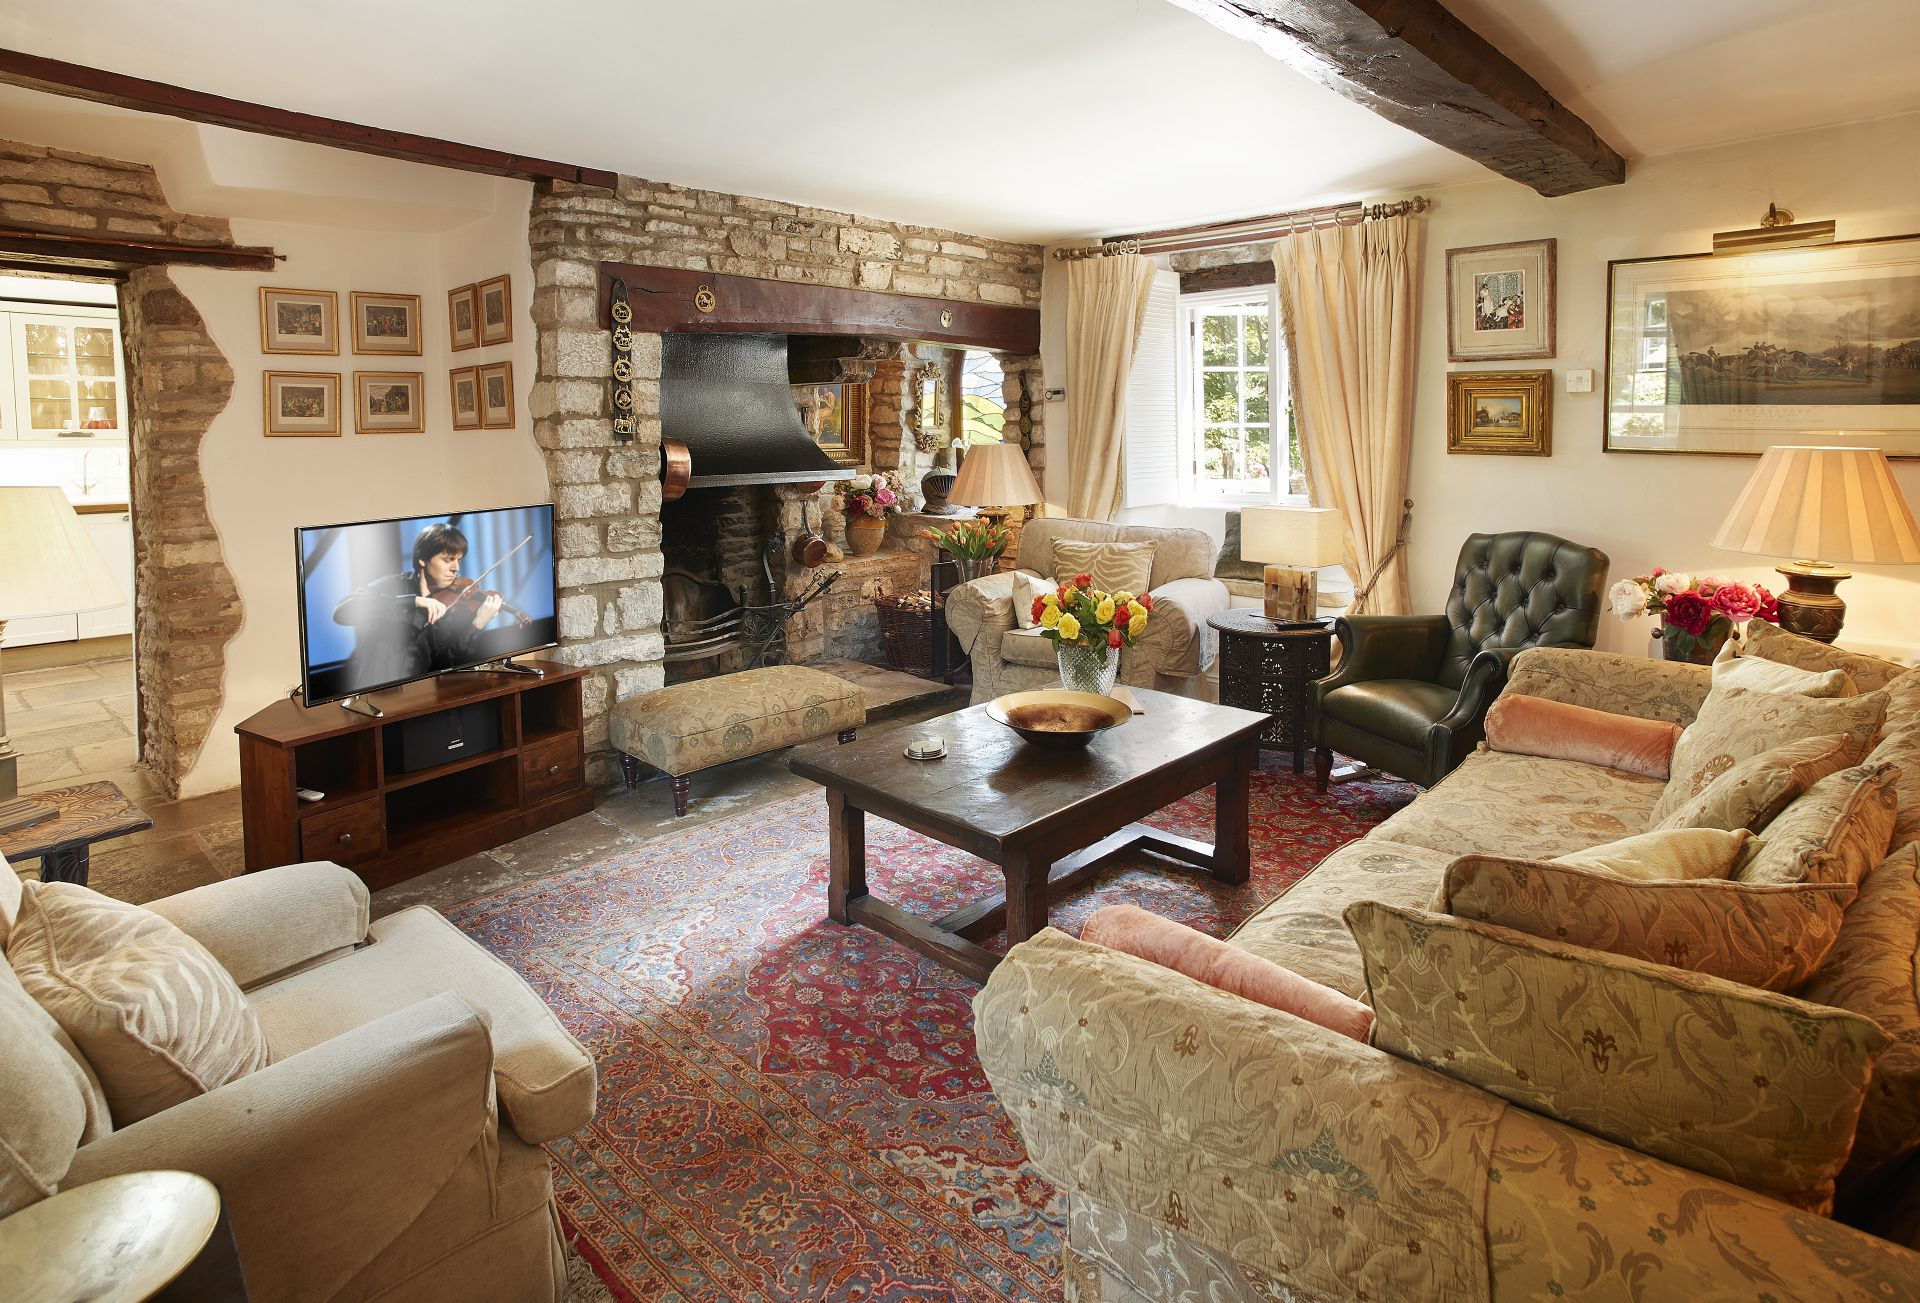 Ground floor:  Sitting room with an inglenook fireplace with an open fire